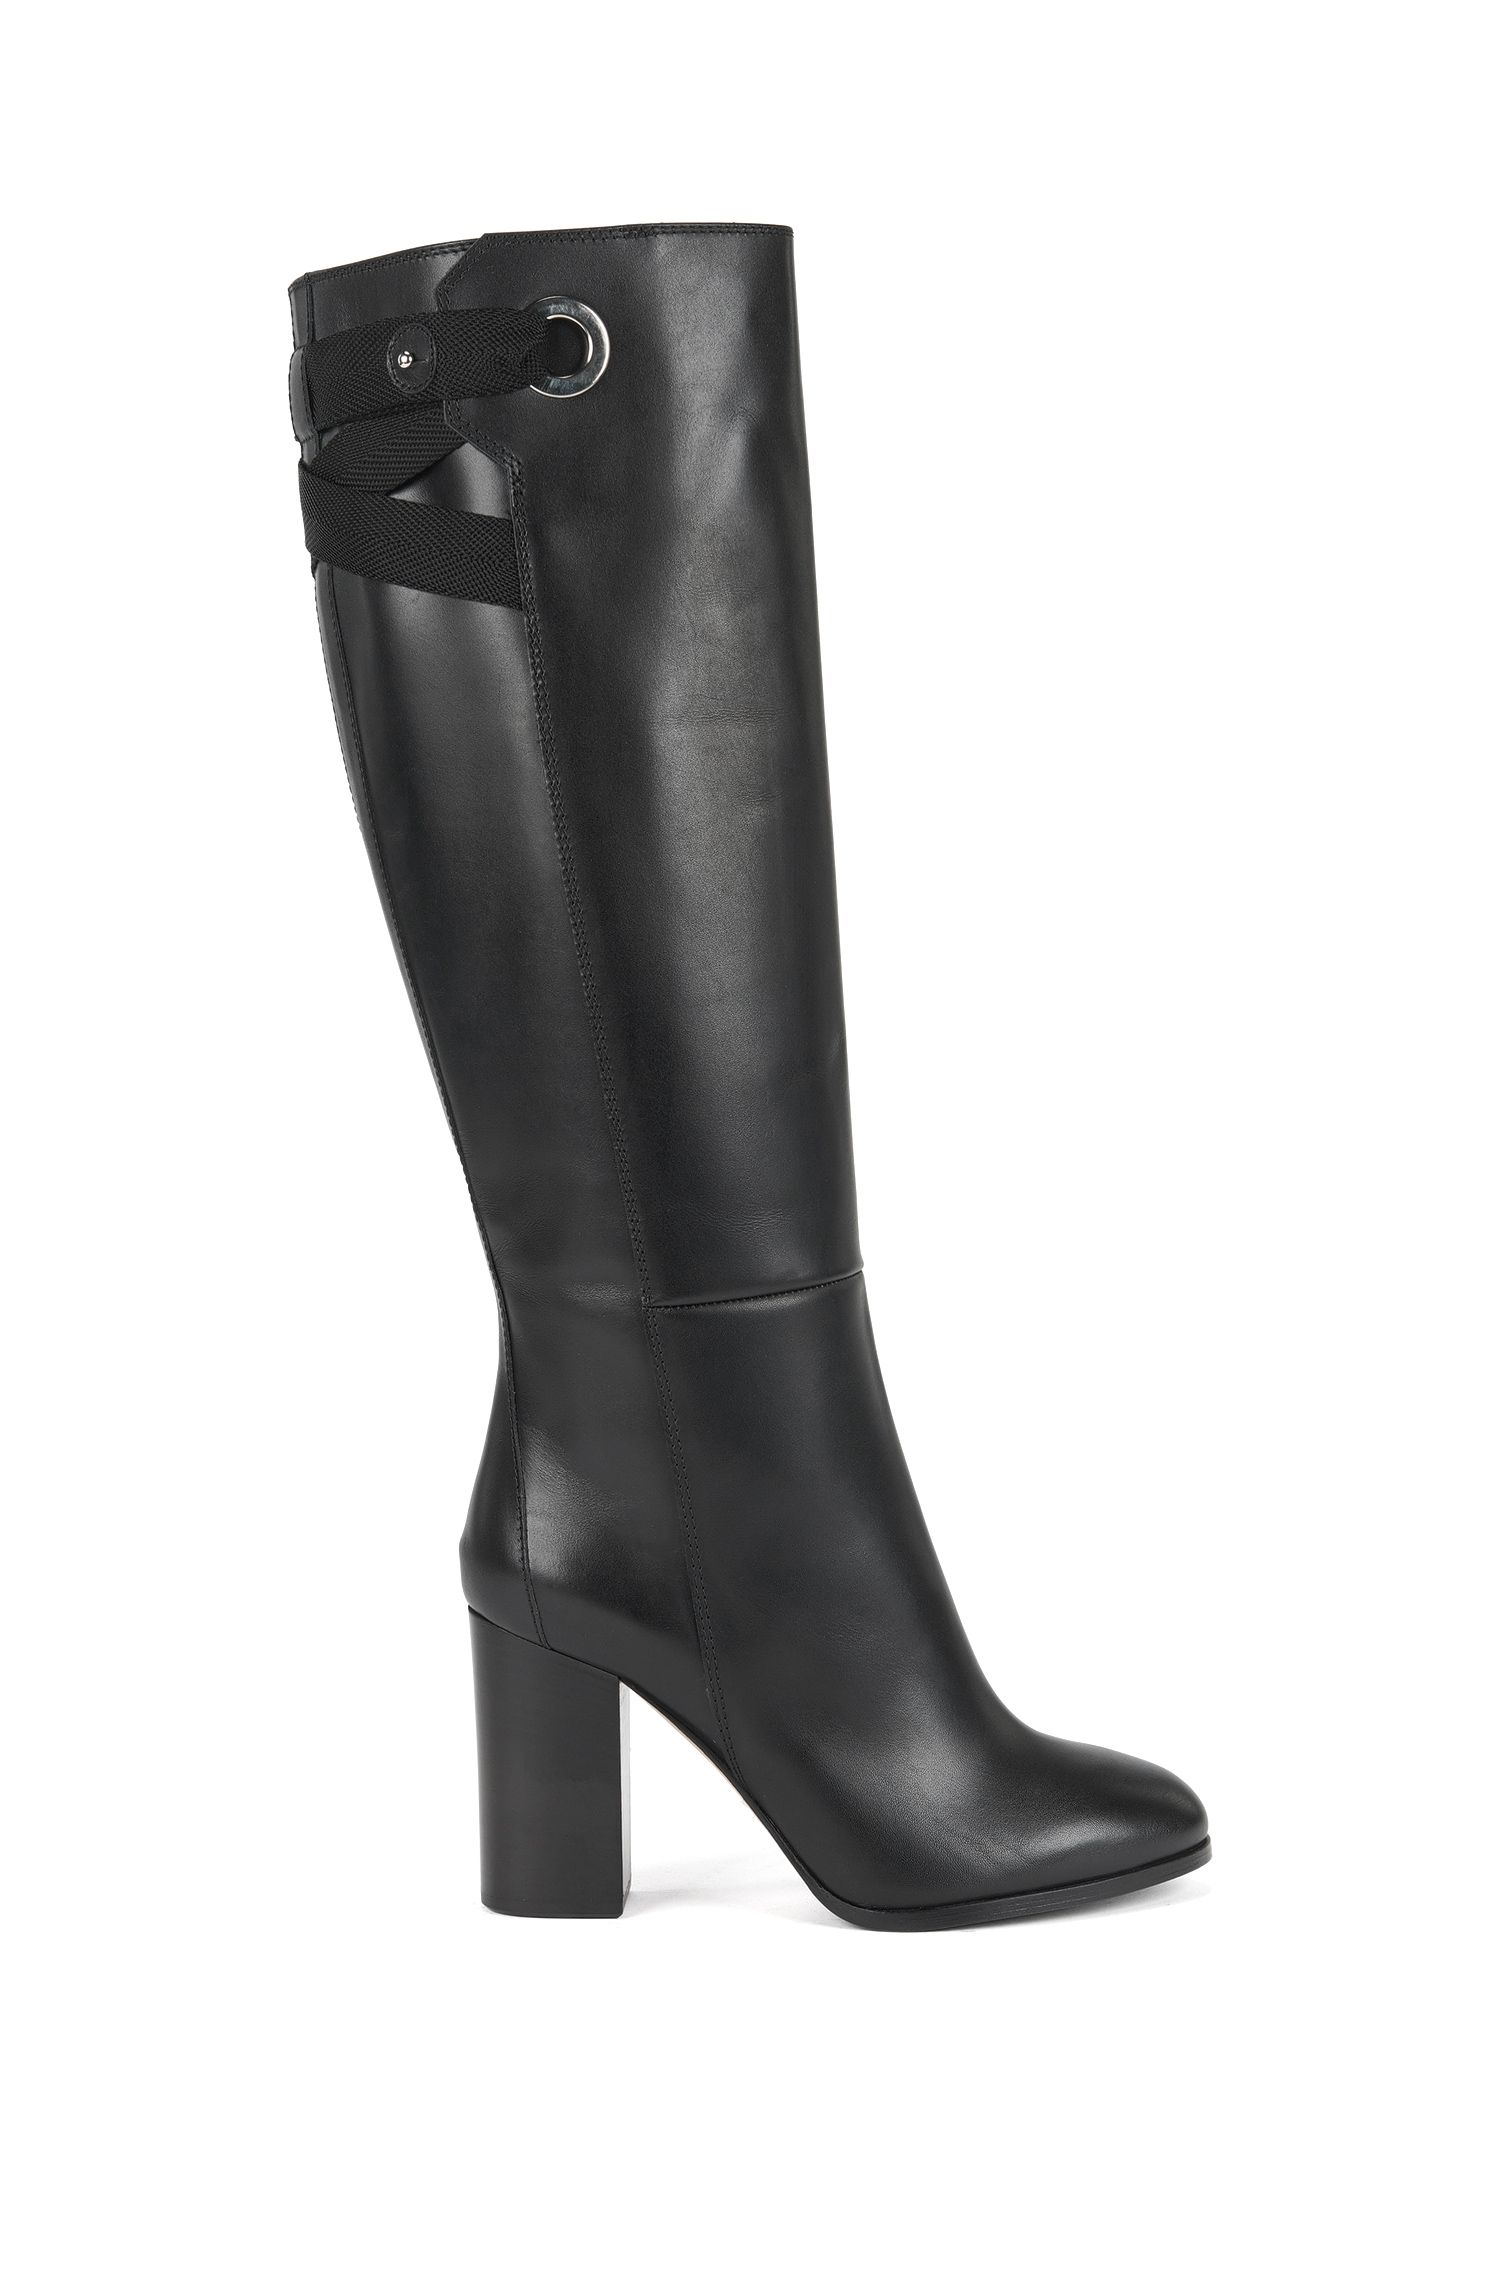 Knee-high boots in Italian leather